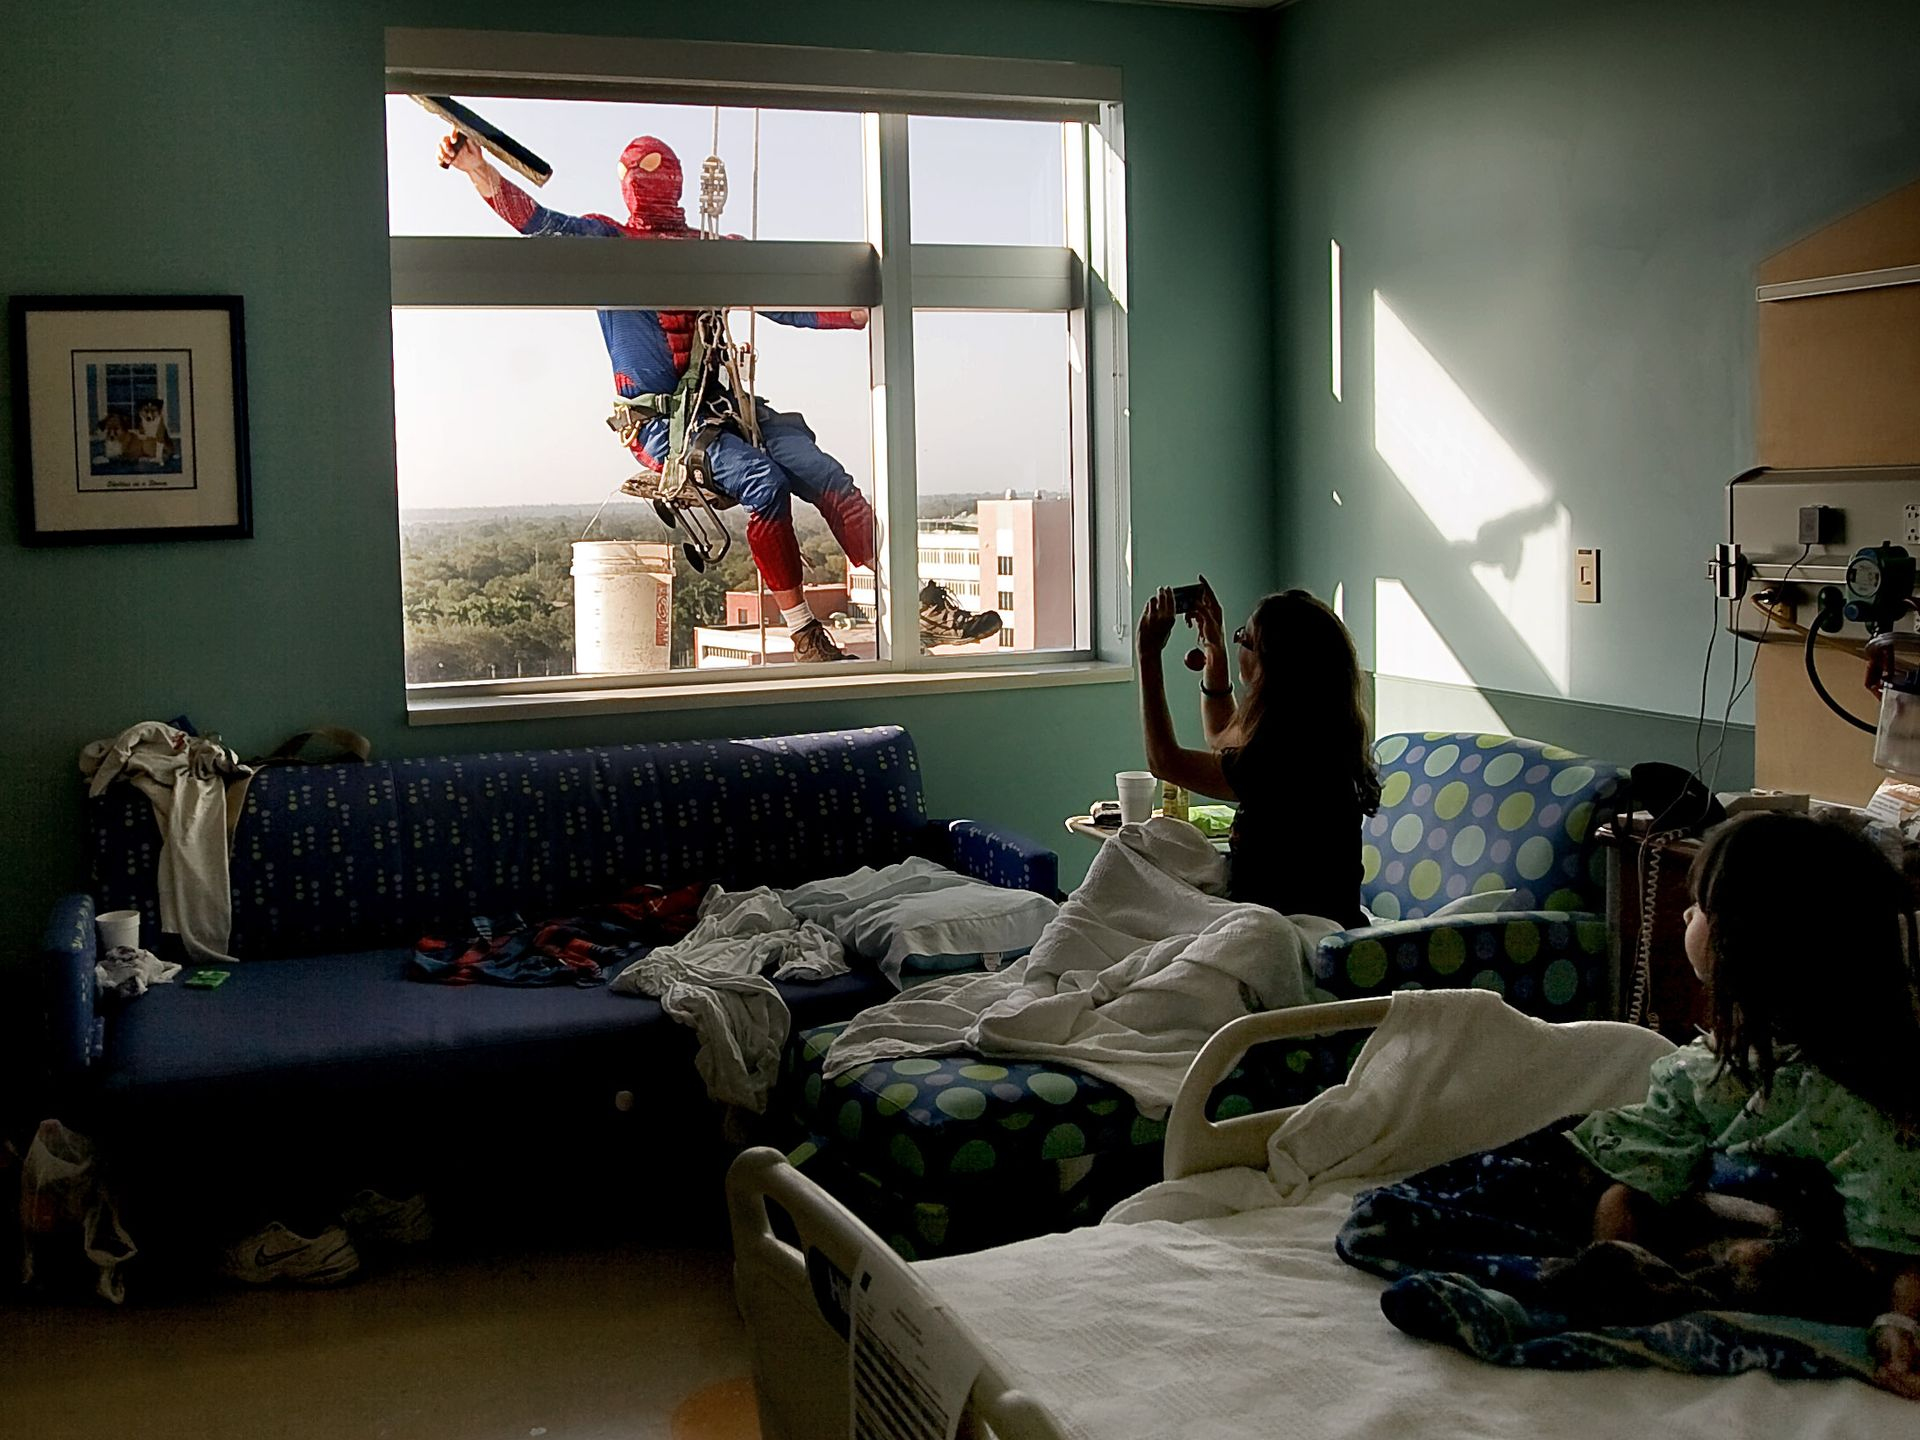 ap-spiderman-window-washer-4_3